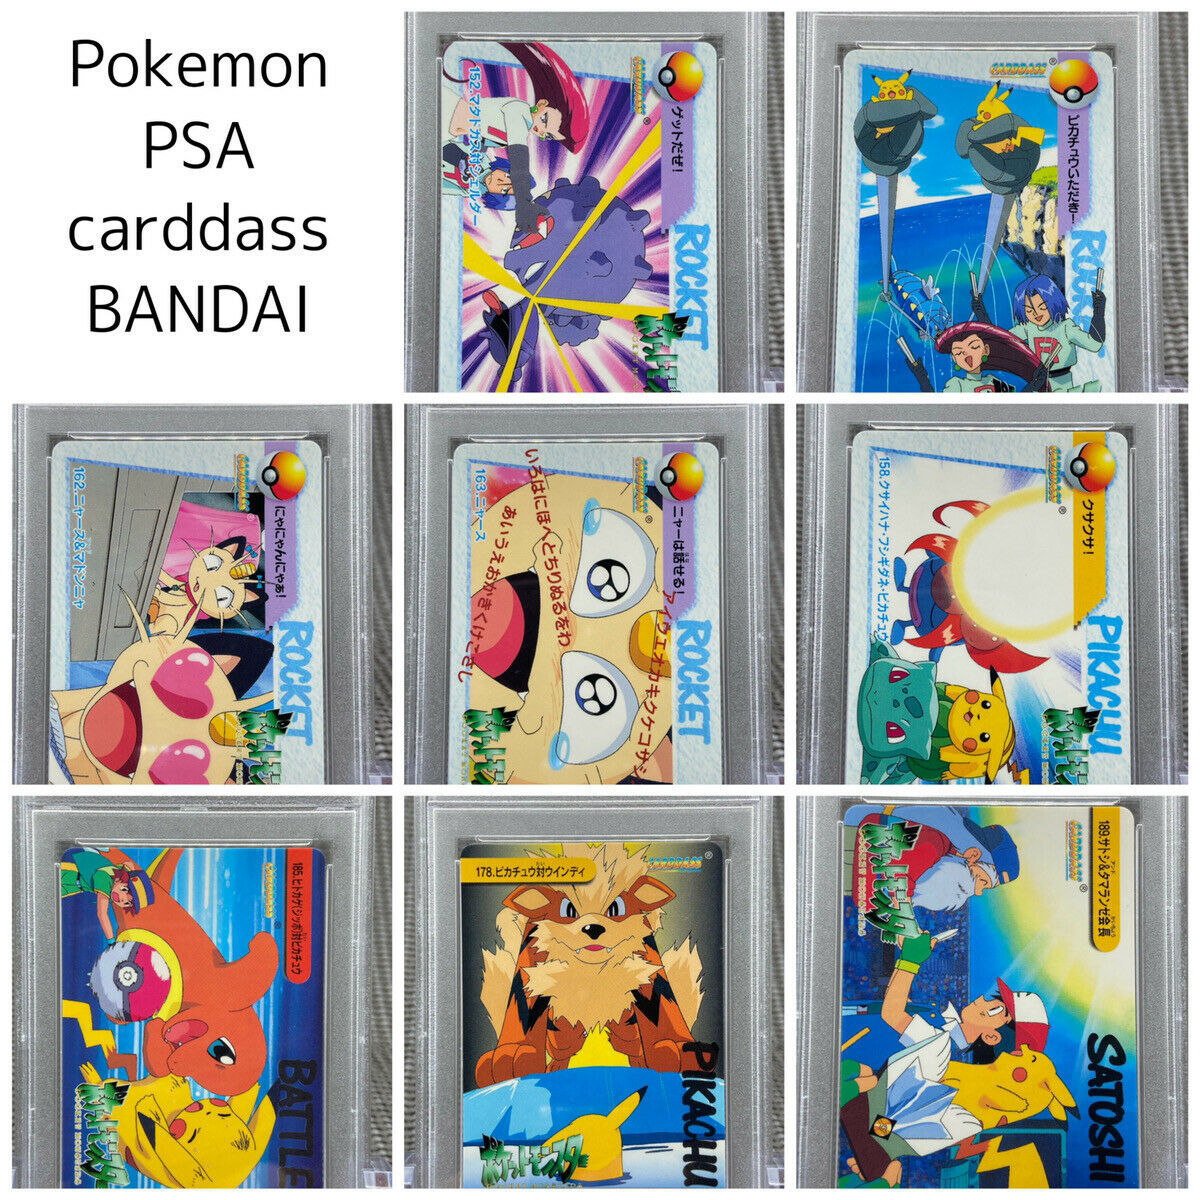 PSA Pokemon bandai carddass Japanese cards discount List !! Pikachu Team Rocket  - $32.38 - $46.40